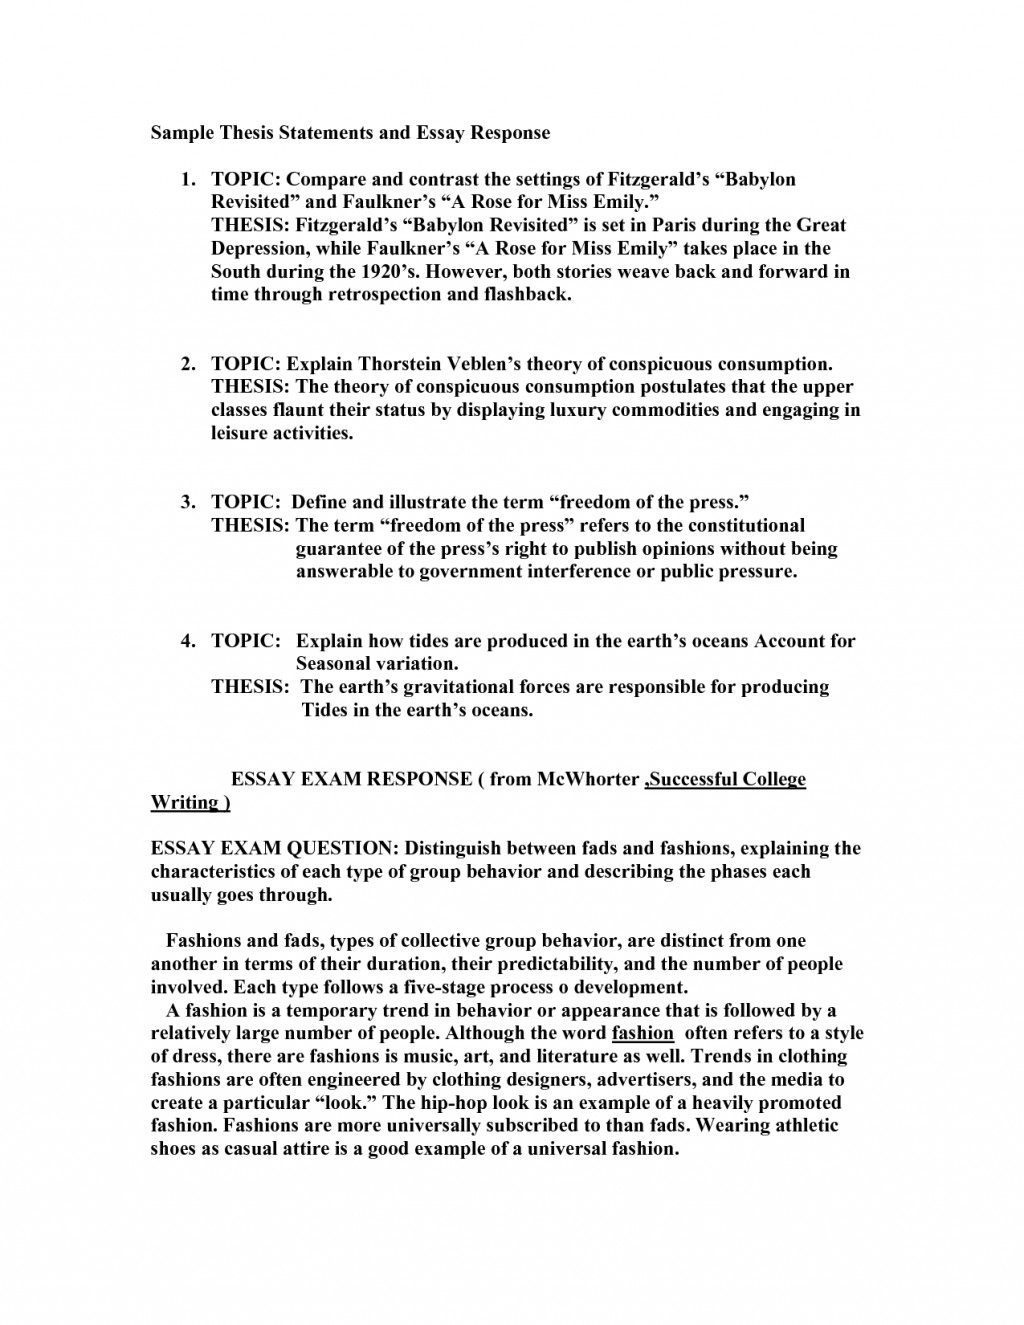 014 Essay Example 6na1pphnb7 Thesis Statement Examples For Impressive Essays Philosophy Papers Psychology Analytical Large